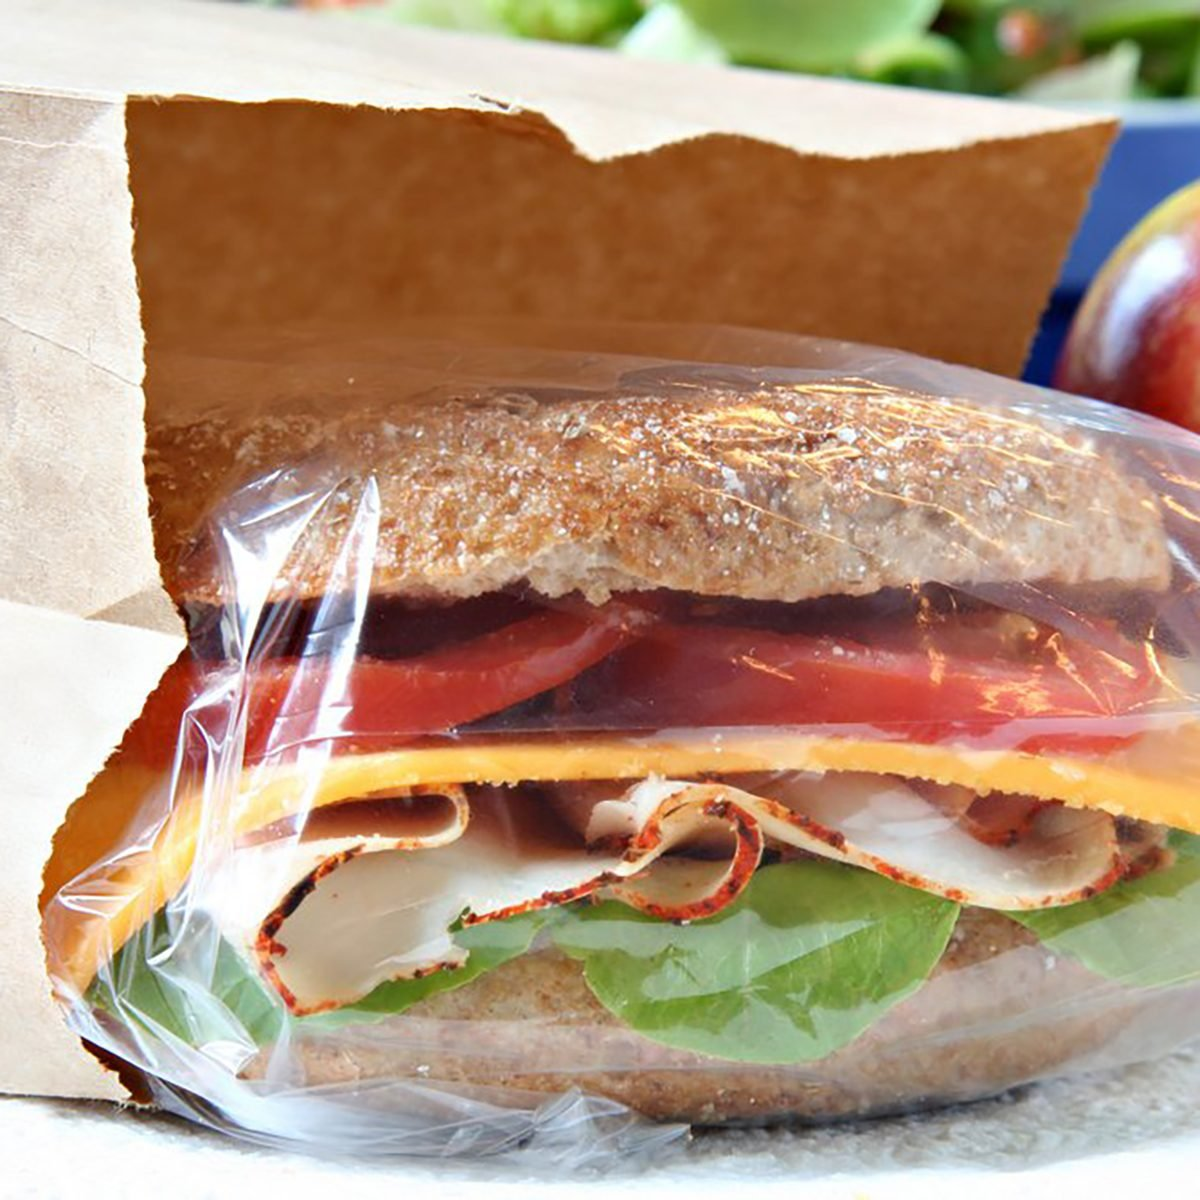 sandwich wrapped in plastic in paper bag, sack lunch